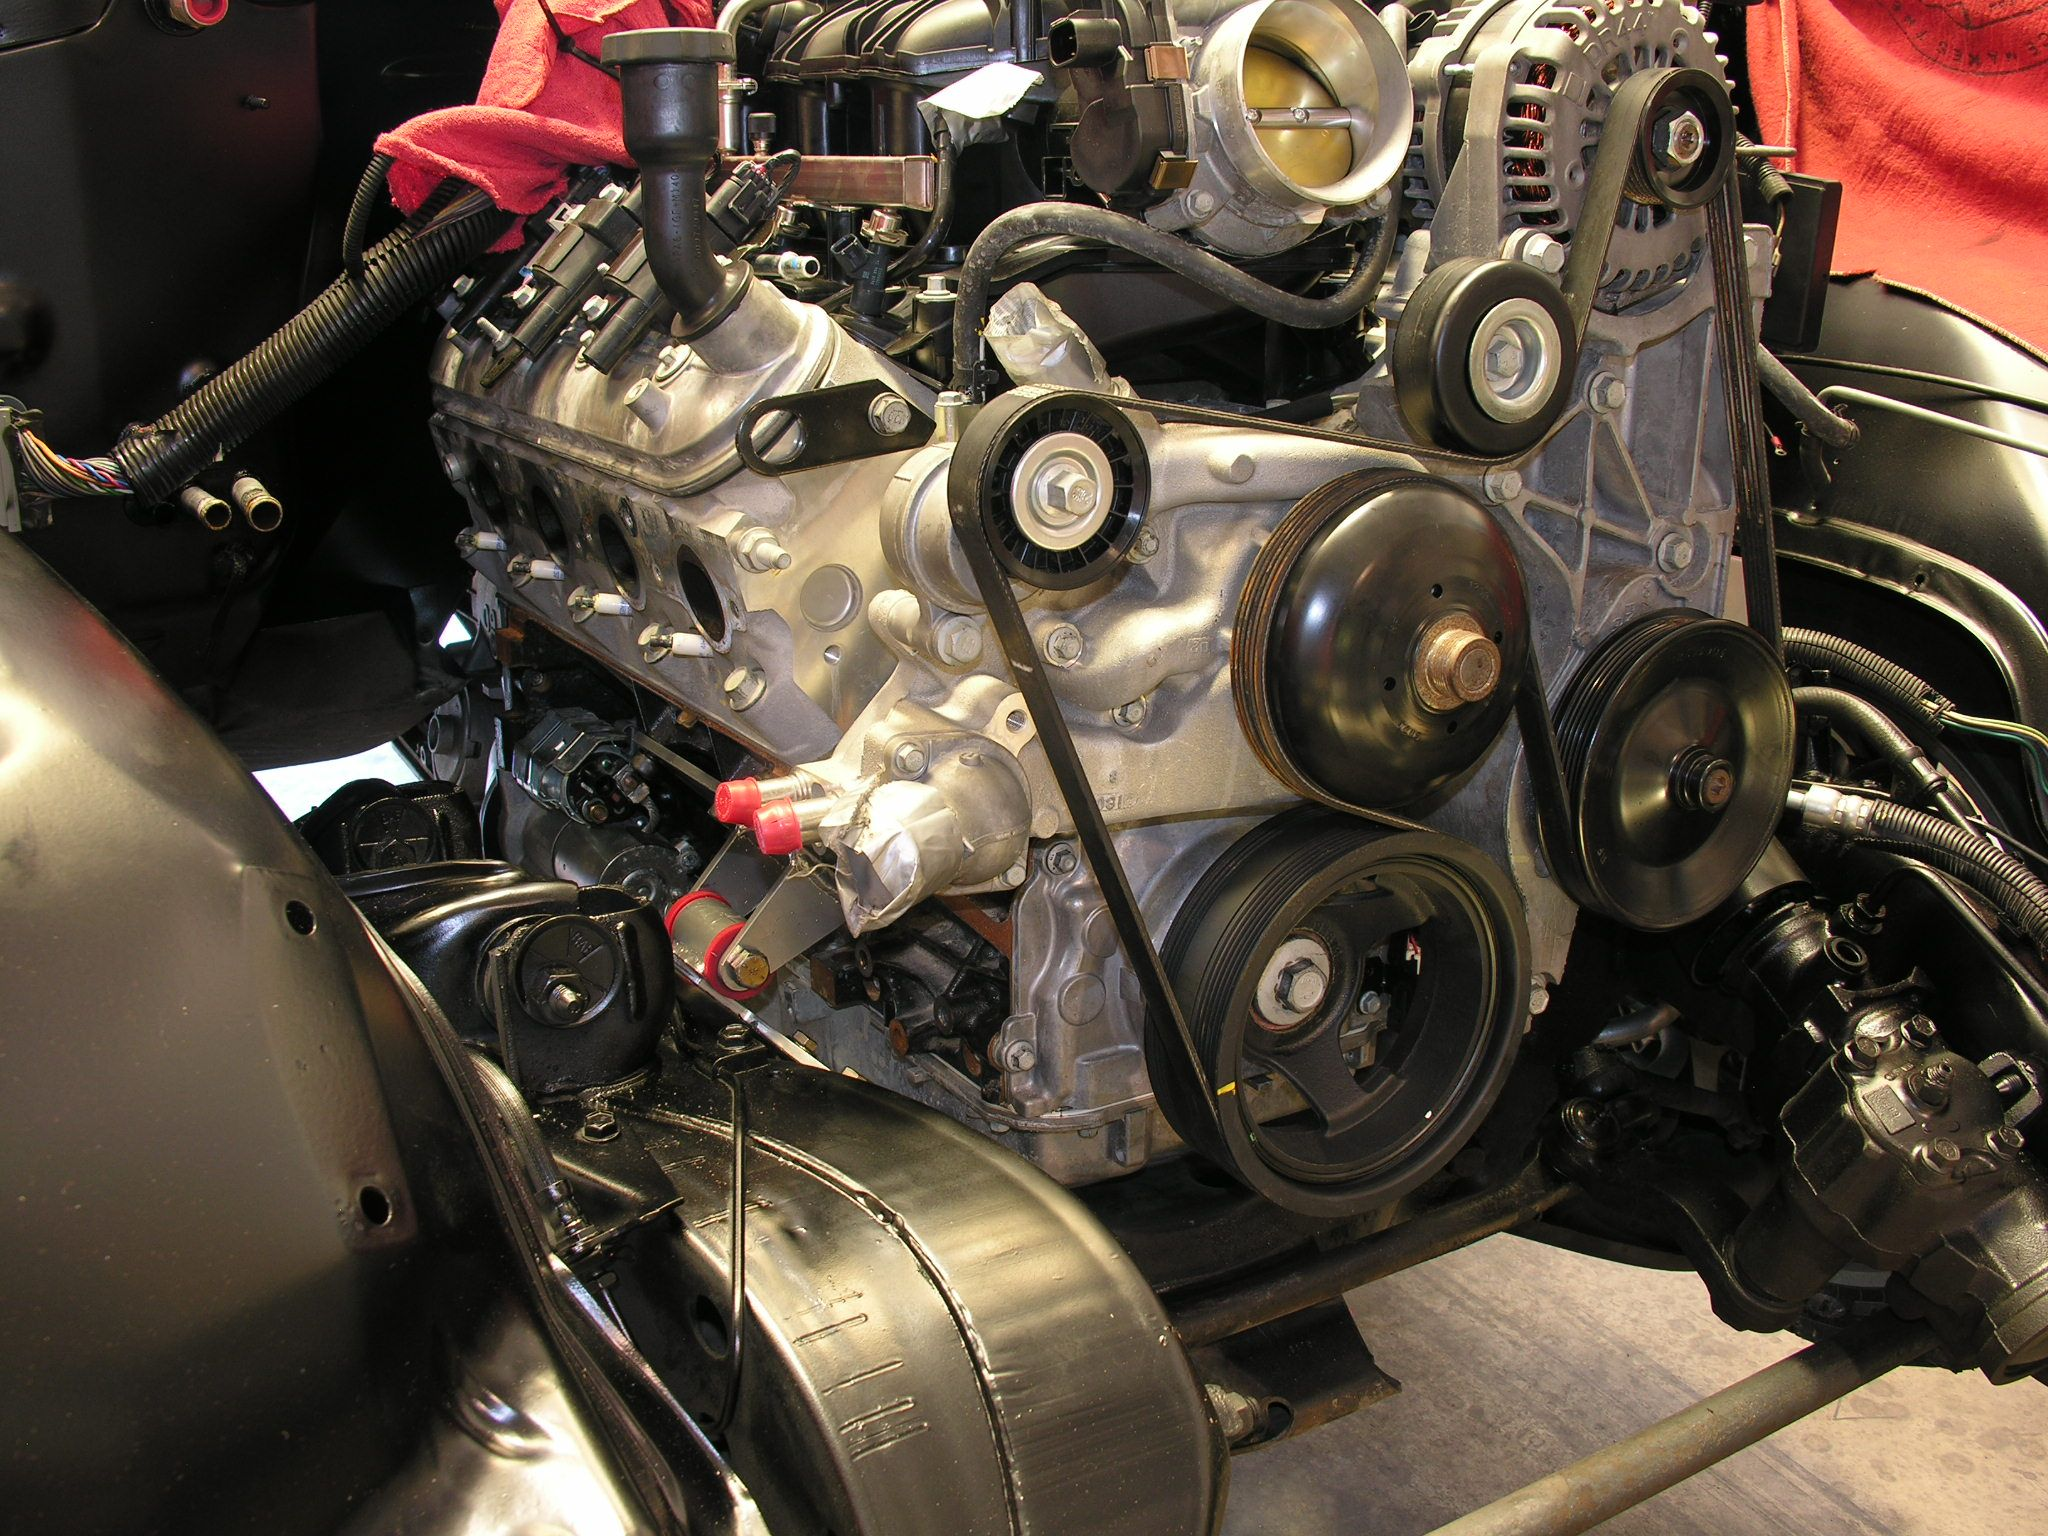 Southern Performance System Spsengines Turnkey Engine Packages Chevy Trucks Chevy Pickup Trucks Truck Frames